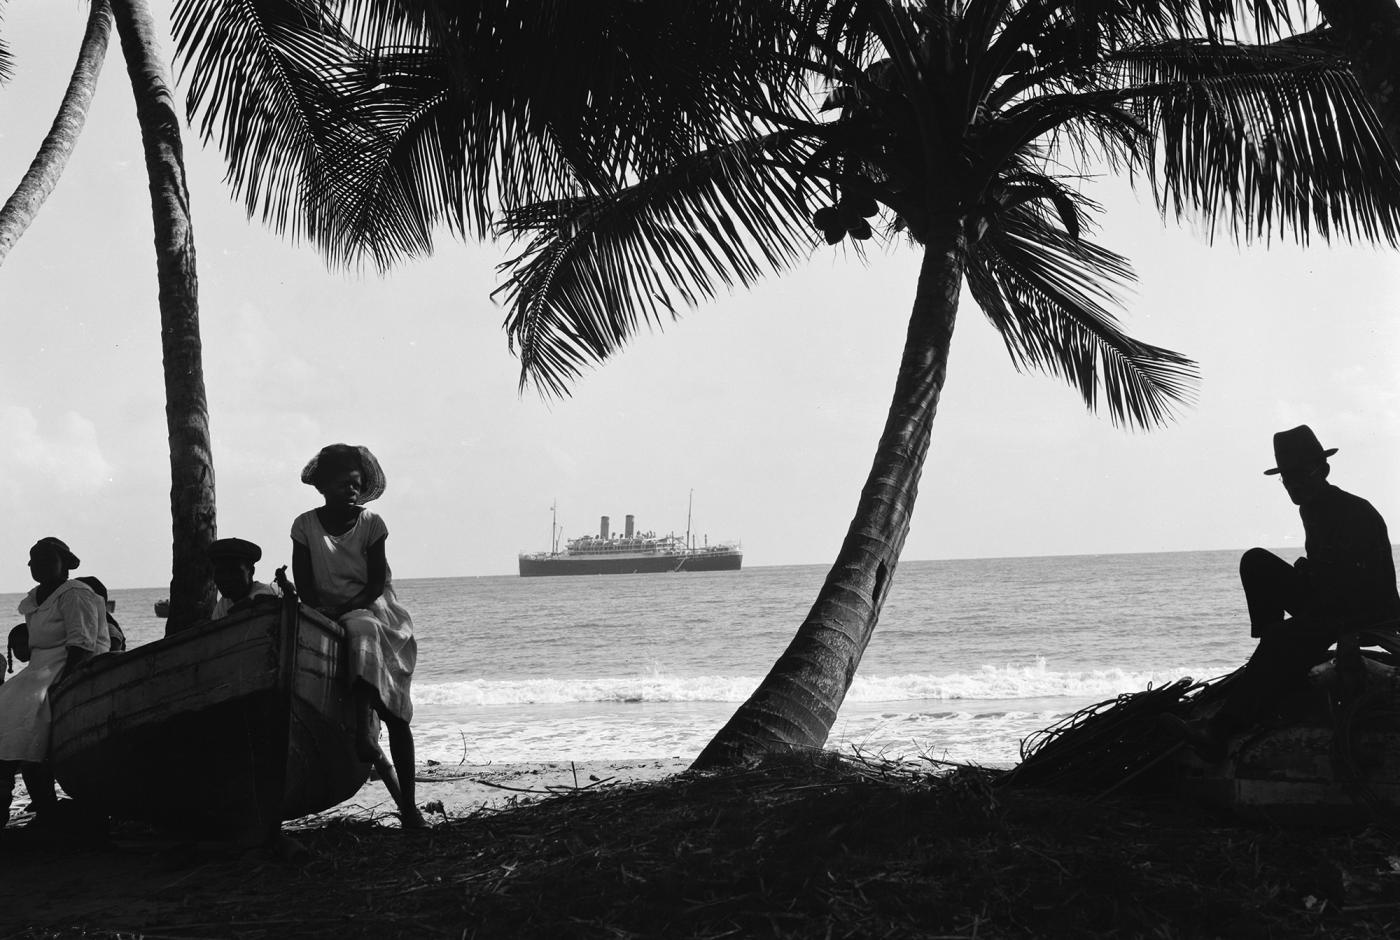 An image showing 'Tobago, West Indies'